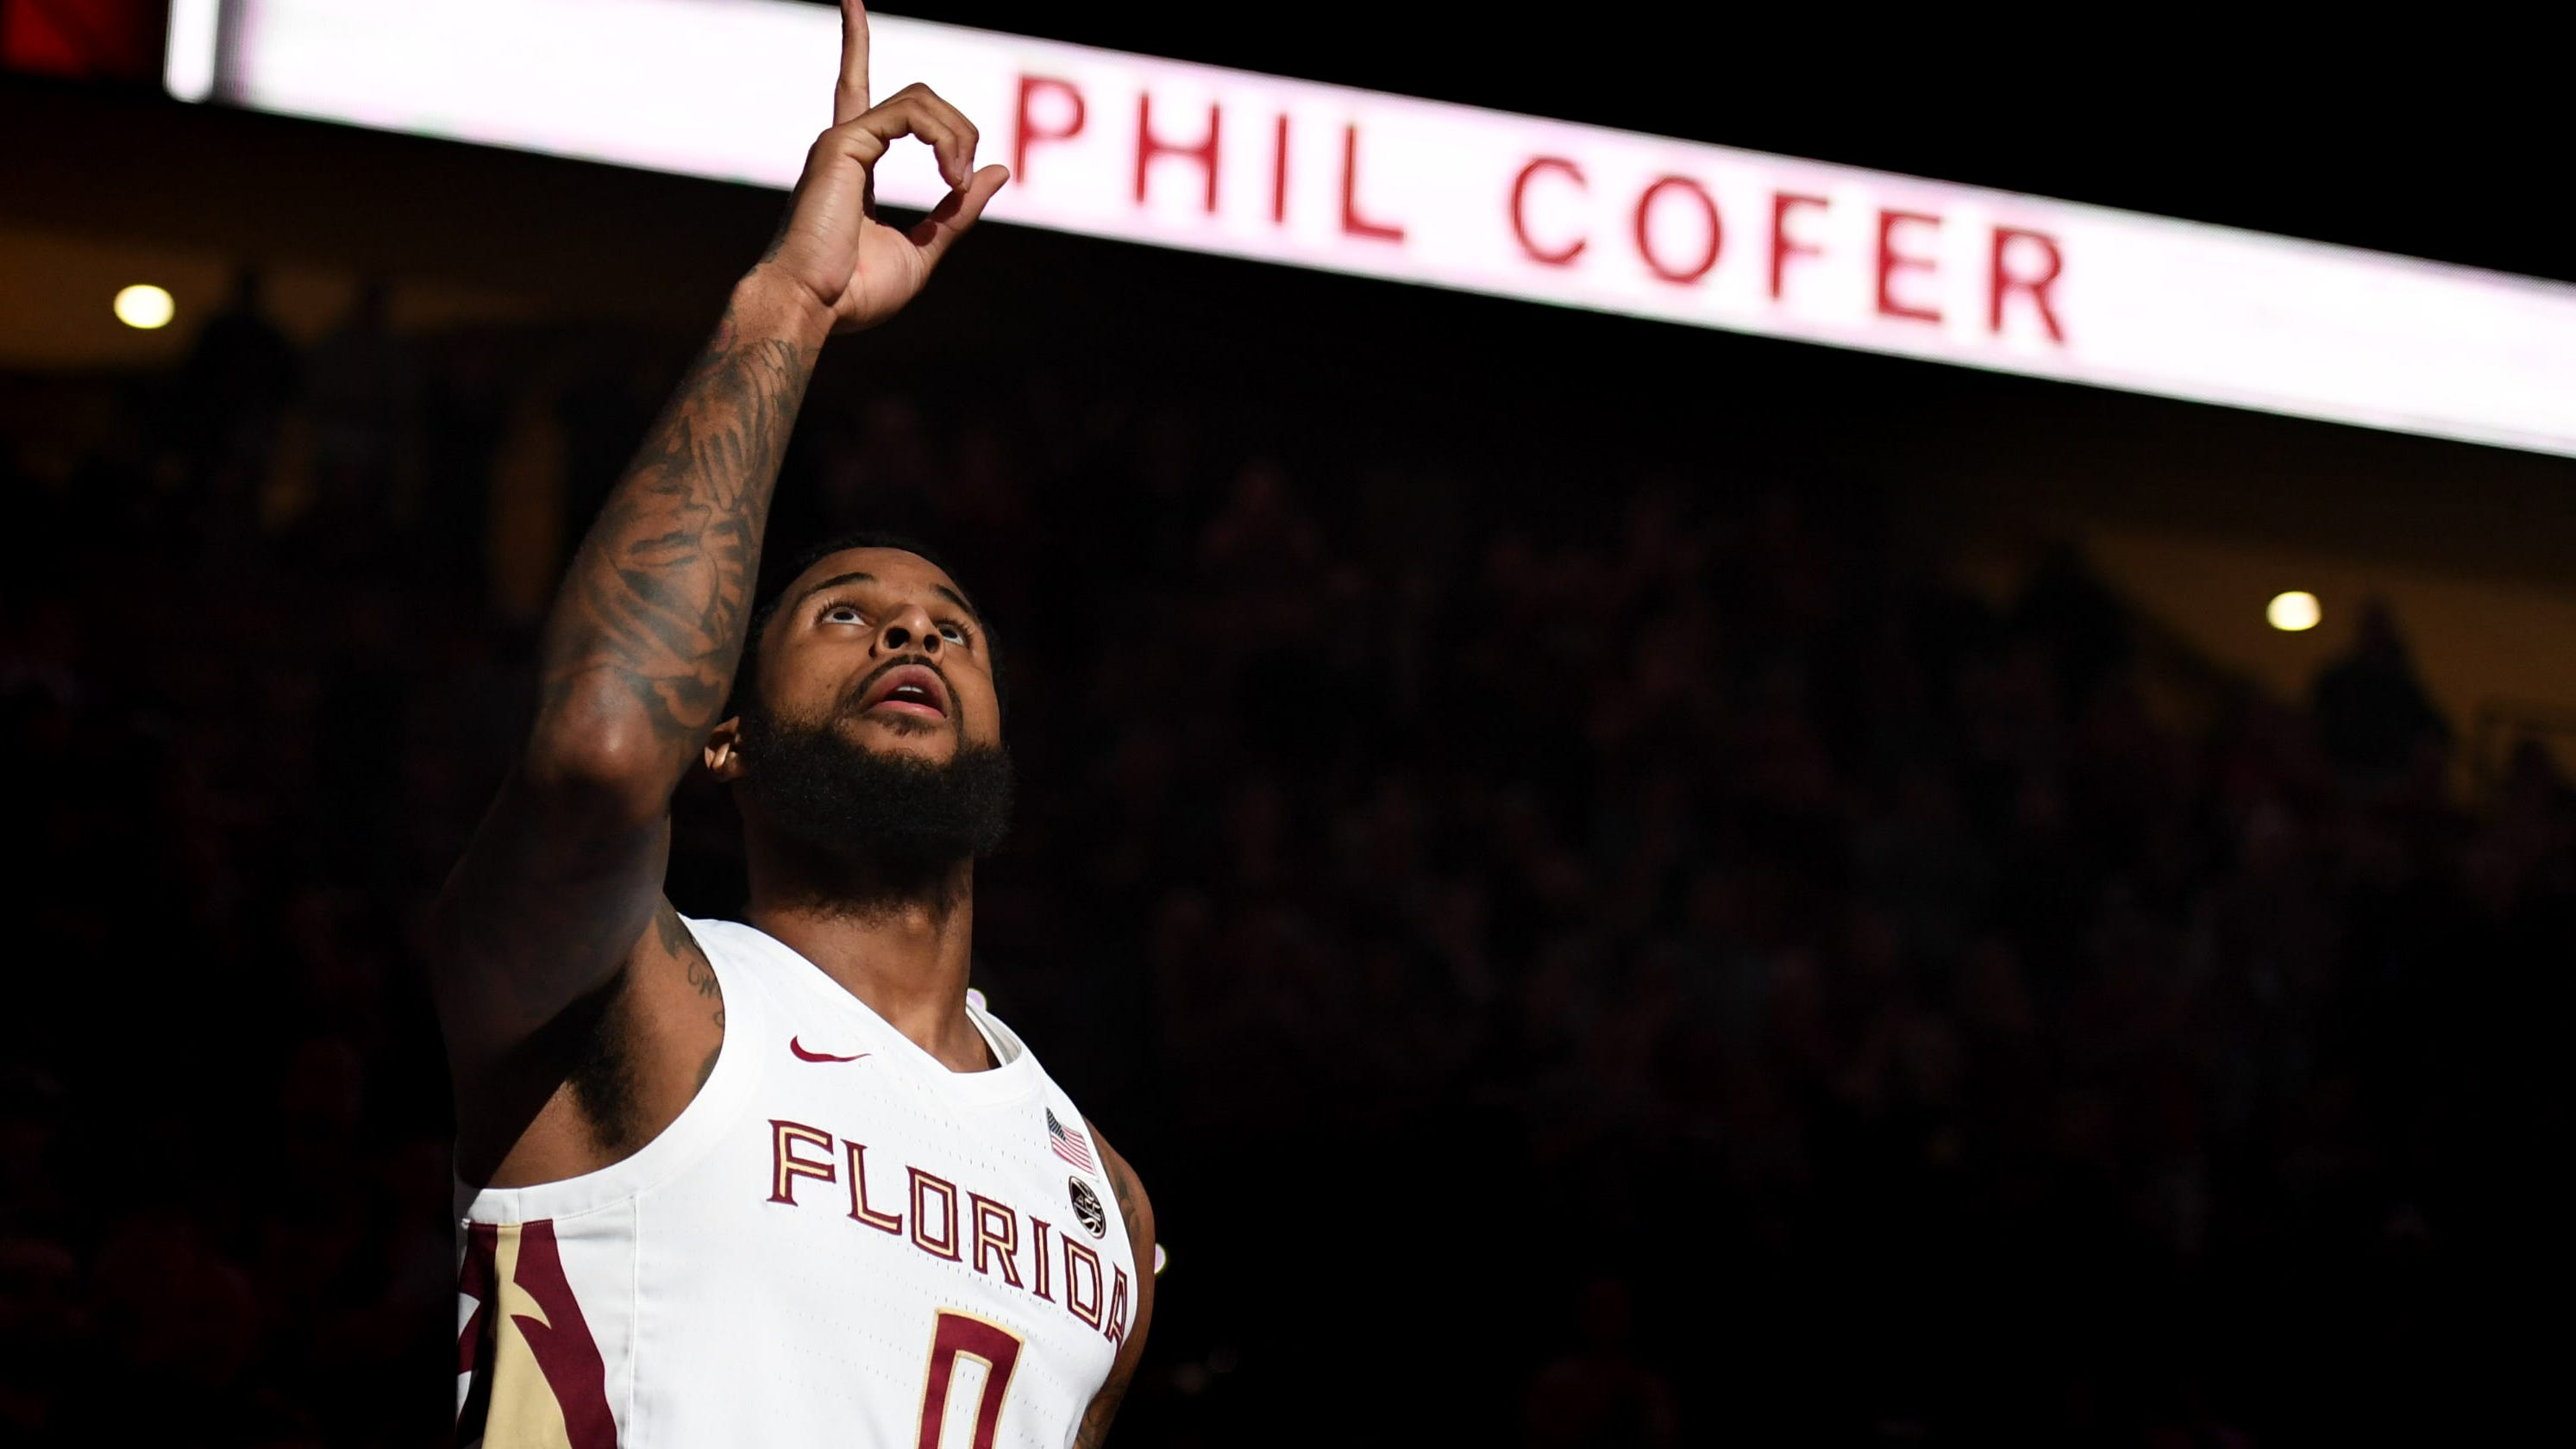 Michael Cofer, former NFL linebacker and father of Florida State's Phil Cofer, dies at 58